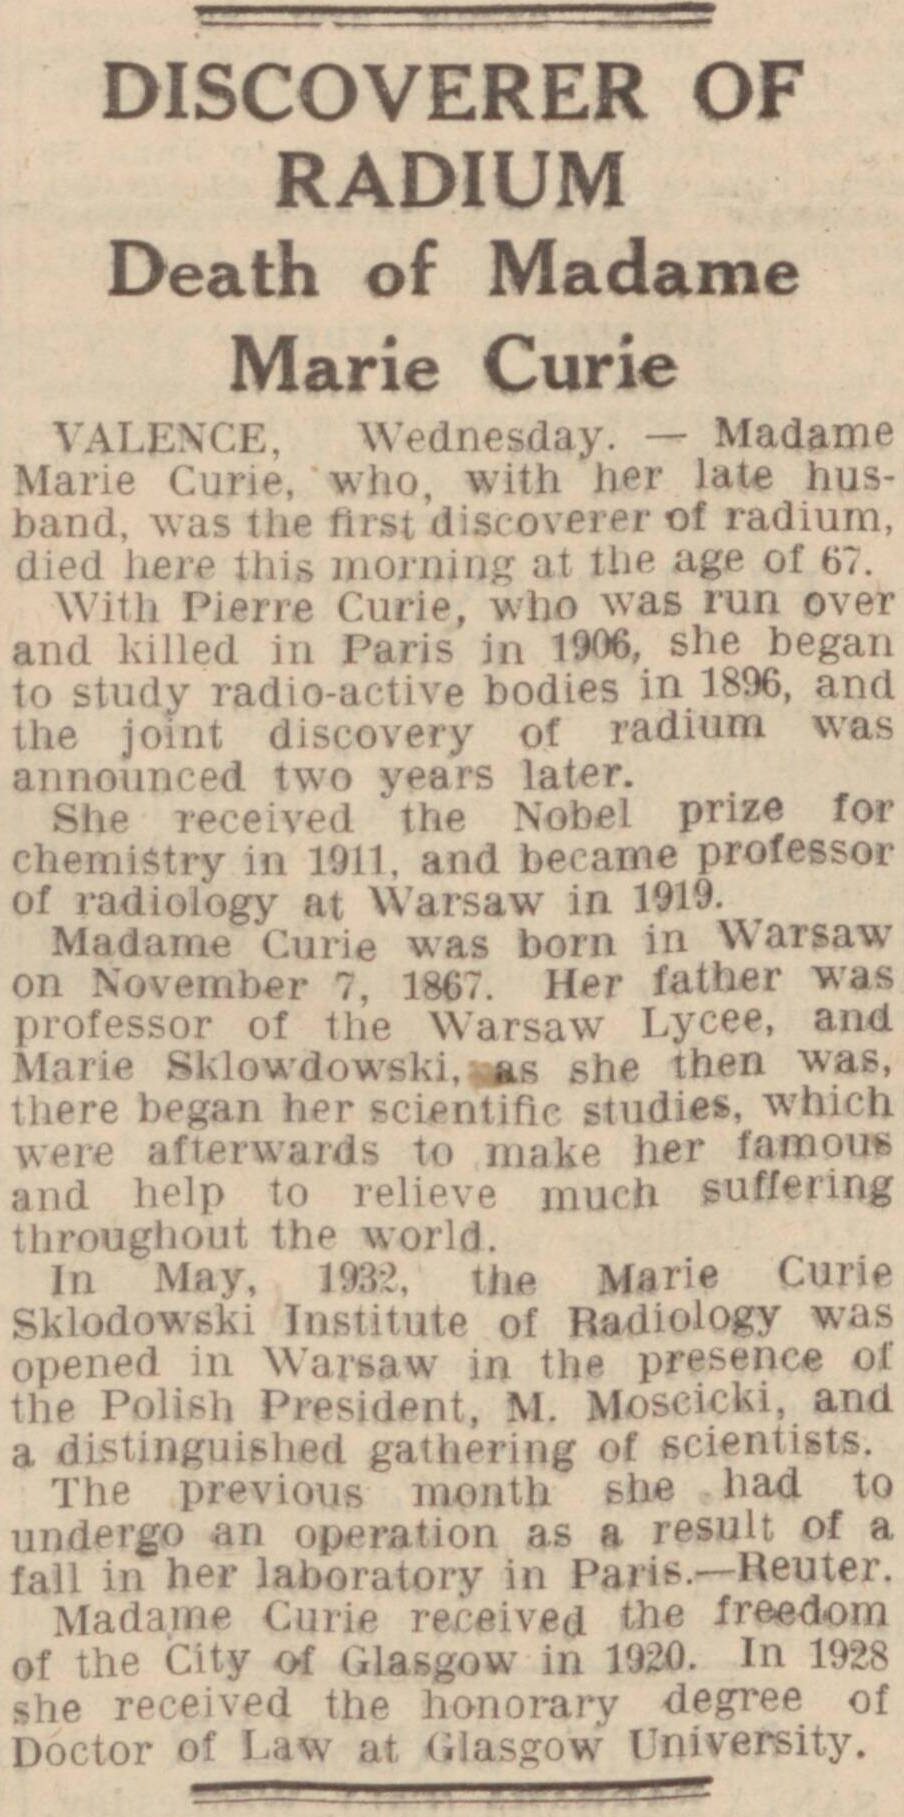 Notice of Marie Curie's death